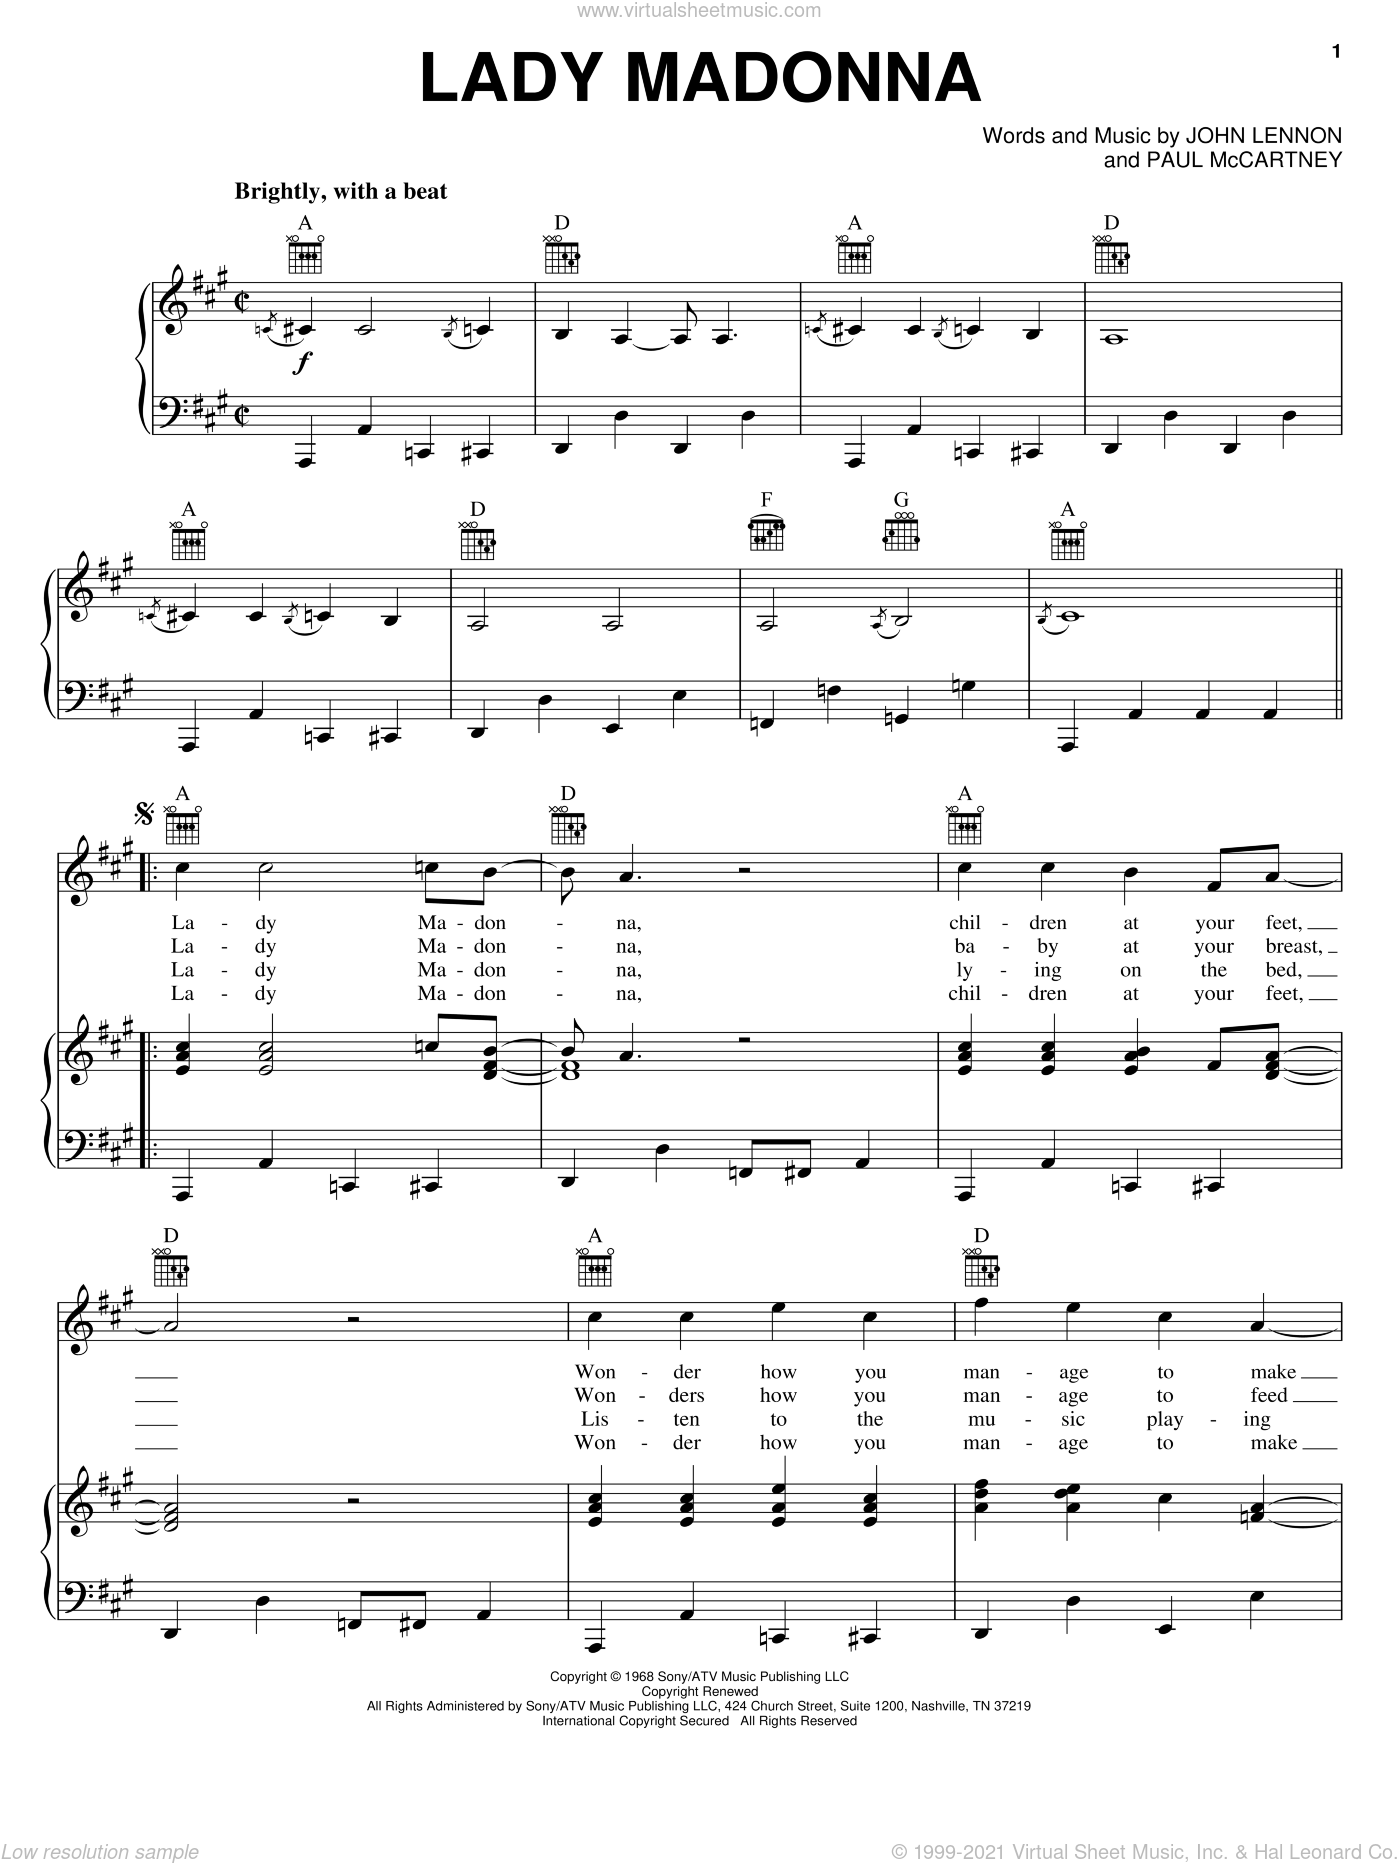 Lady Madonna sheet music for voice, piano or guitar by The Beatles, John Lennon and Paul McCartney. Score Image Preview.